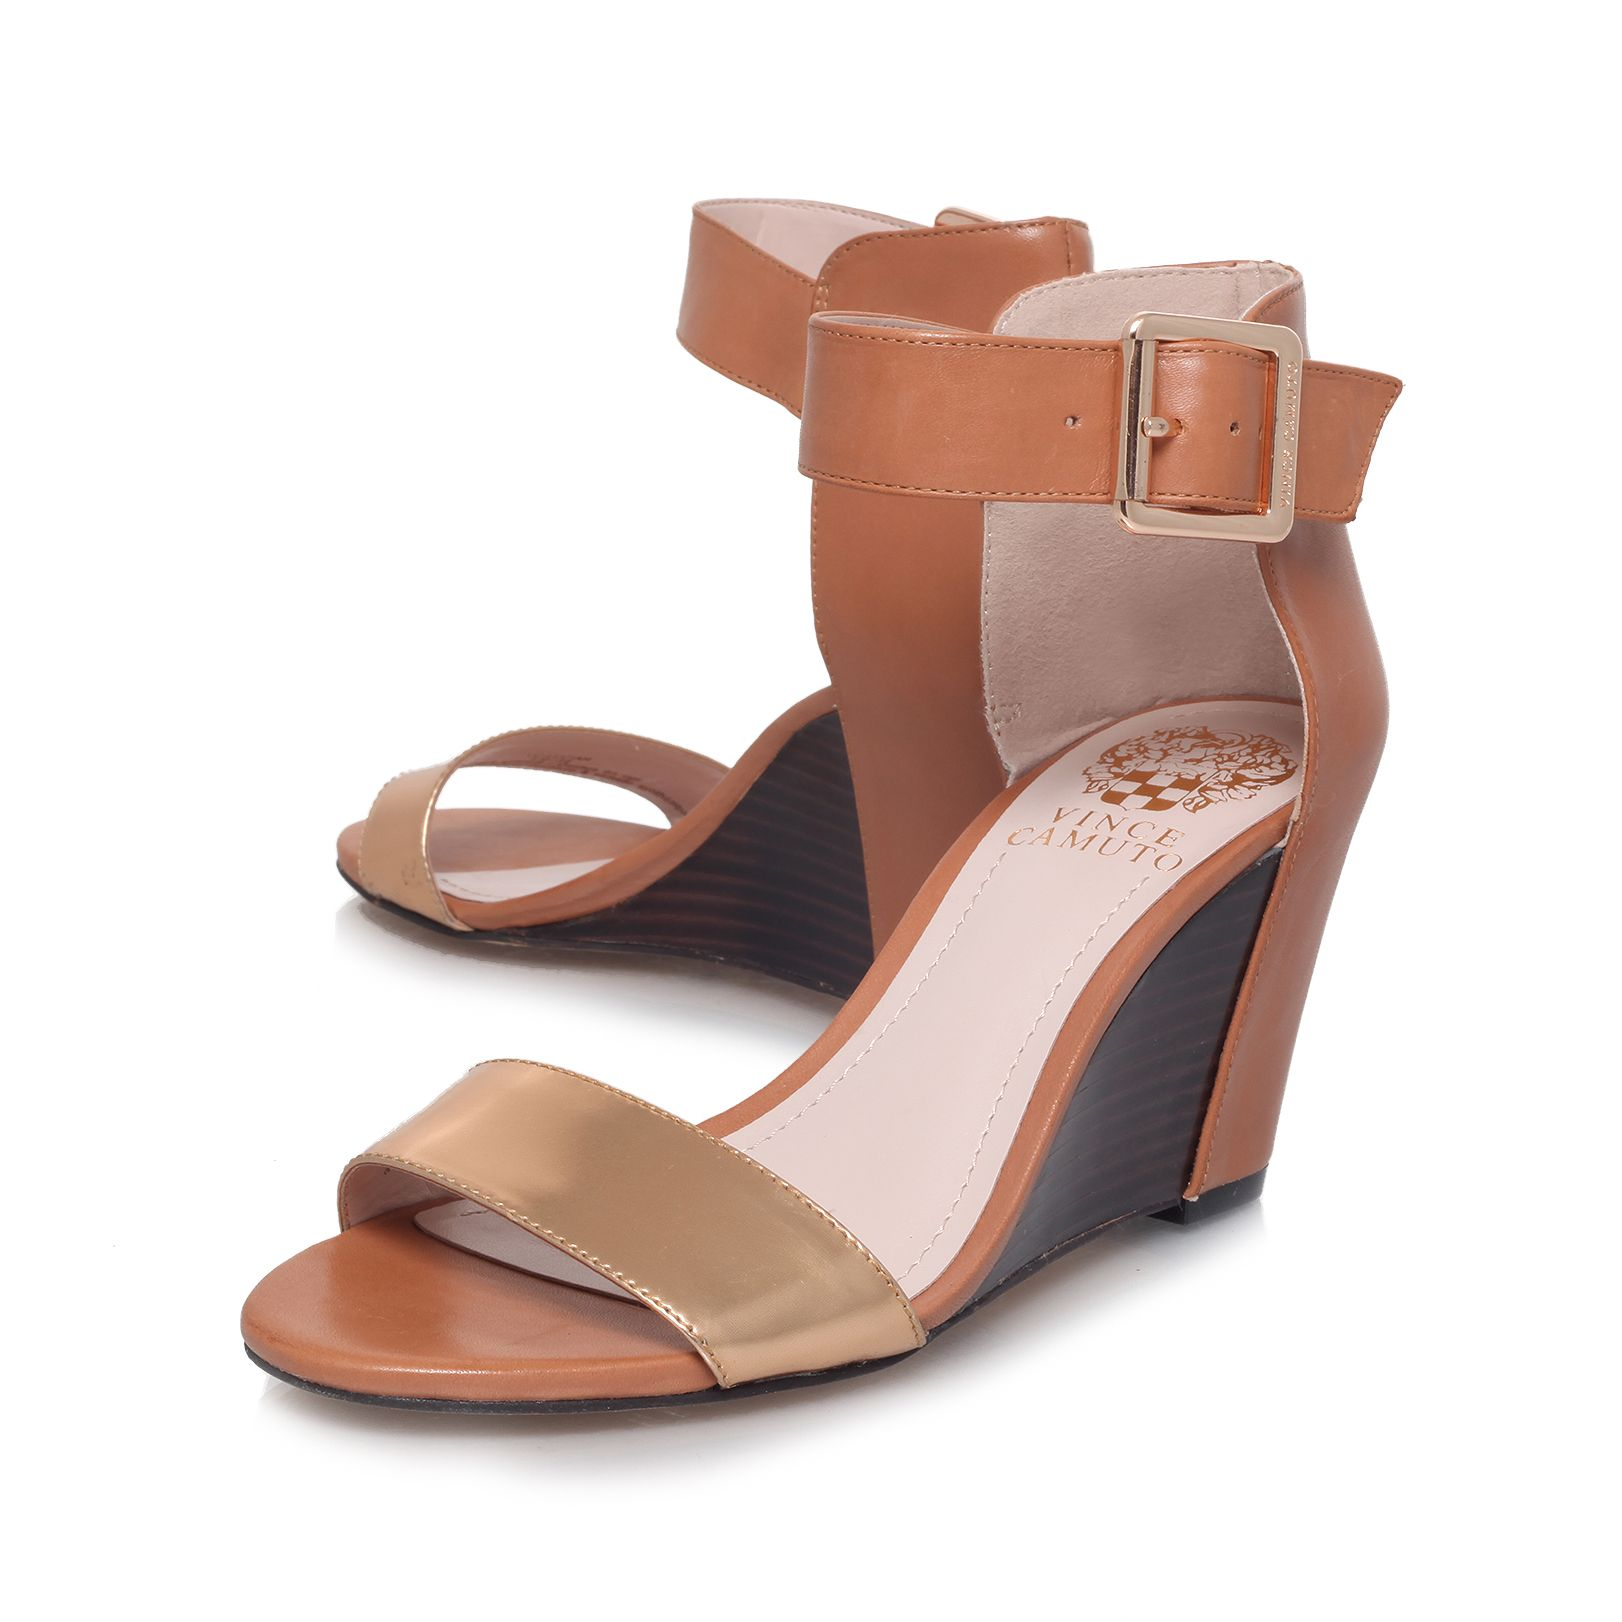 Luciah mid heel wedge sandals